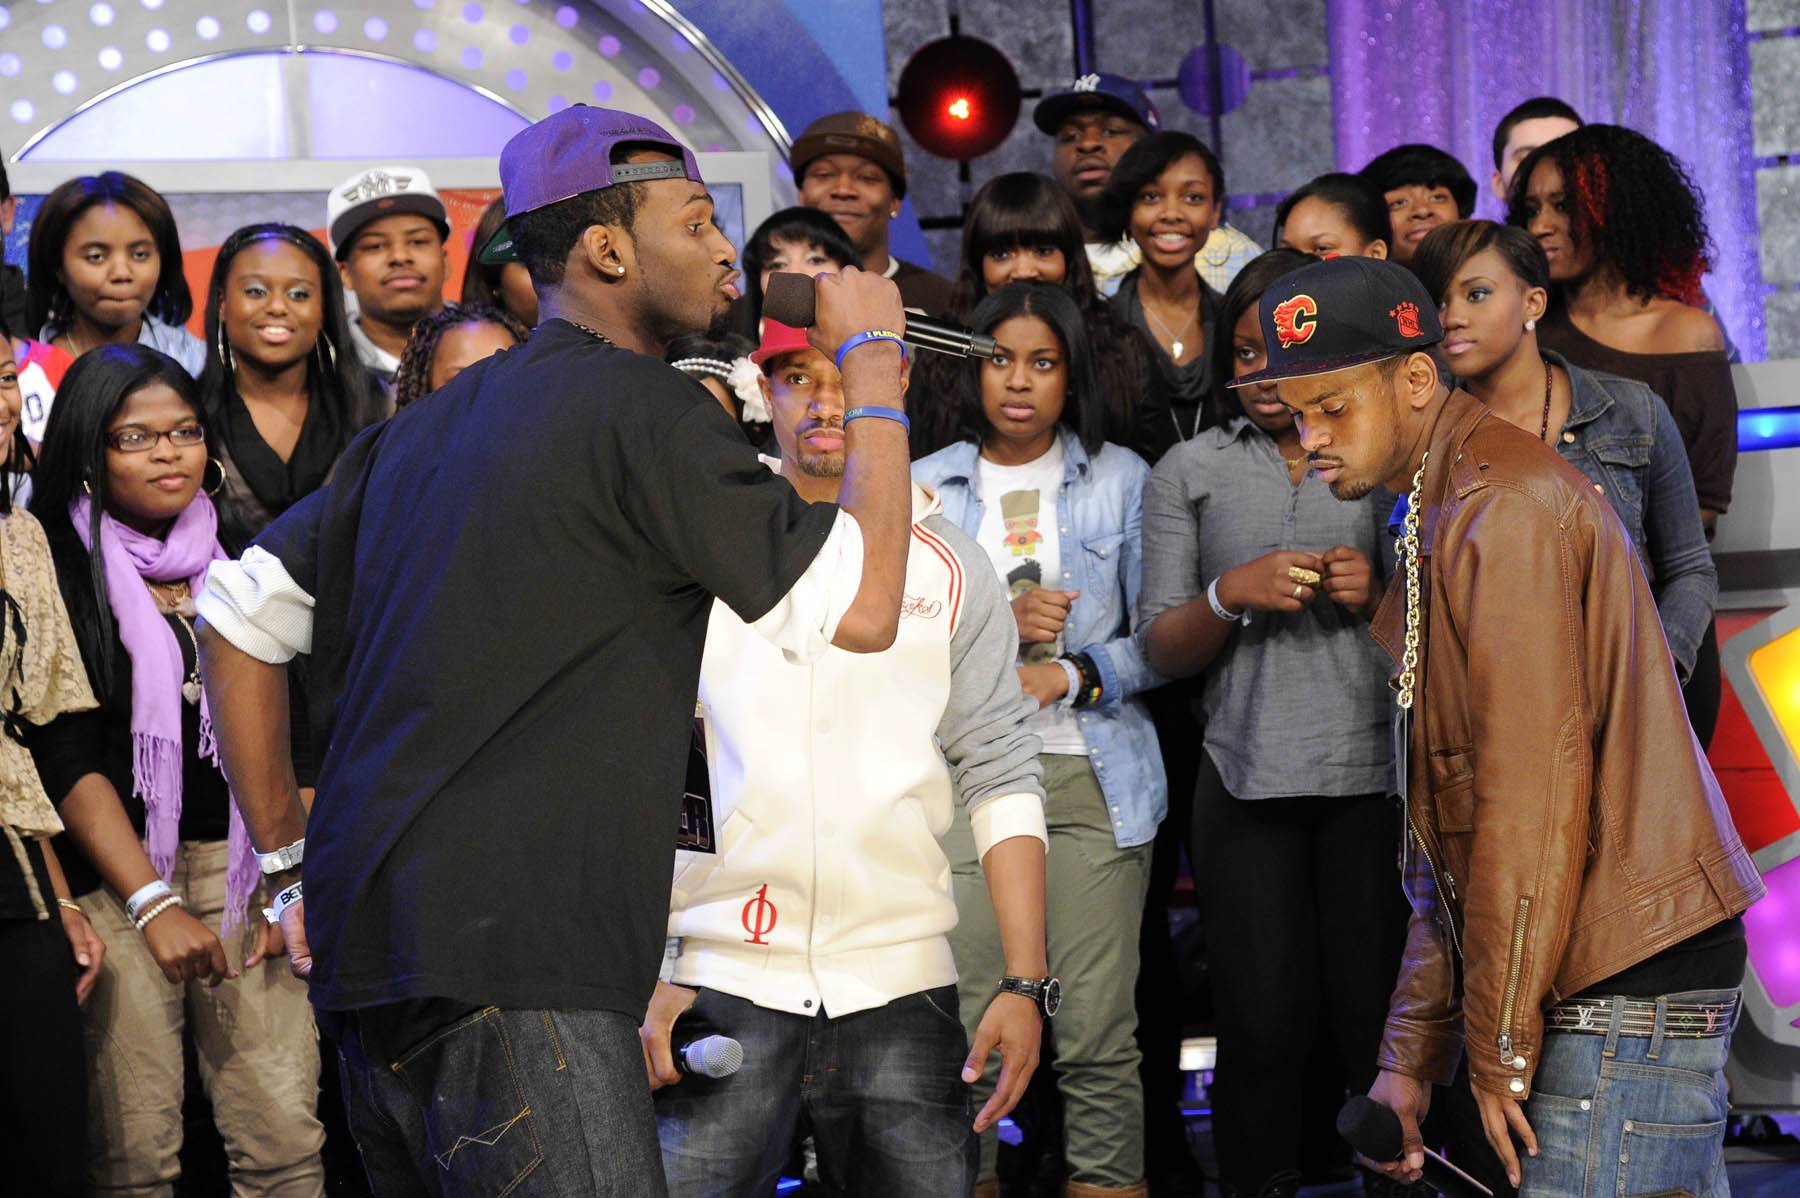 Round Two, Baby - In round two, Freestyle Friday challenger Rio the Raptor spits at 106 & Park, January 27, 2012. (Photo: John Ricard / BET)